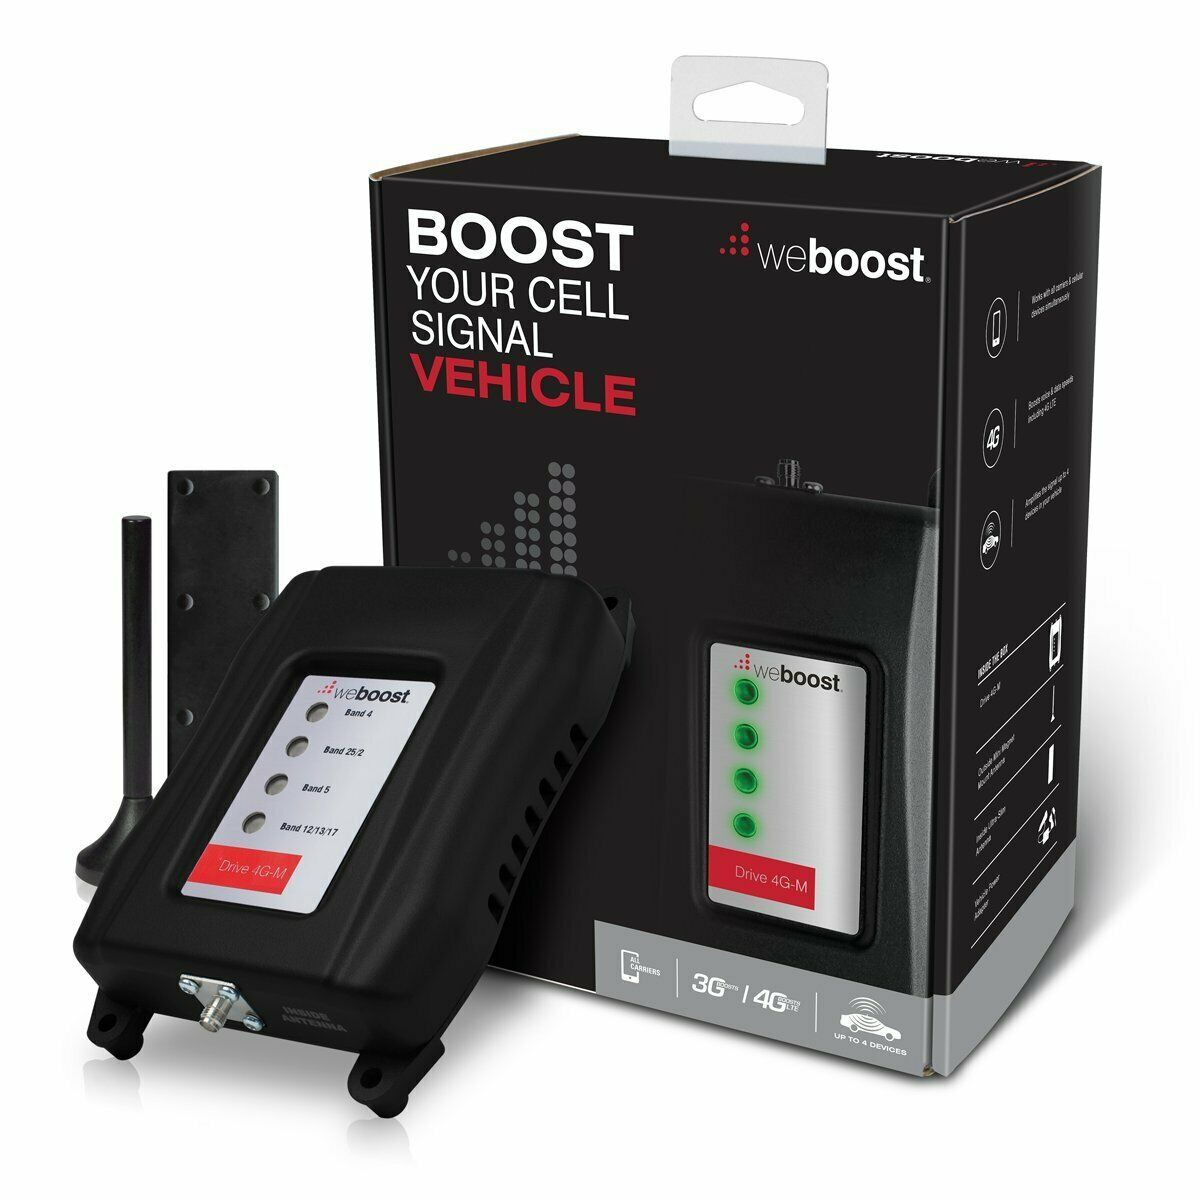 Weboost - Drive 4g-m Cellular Signal Booster - Black